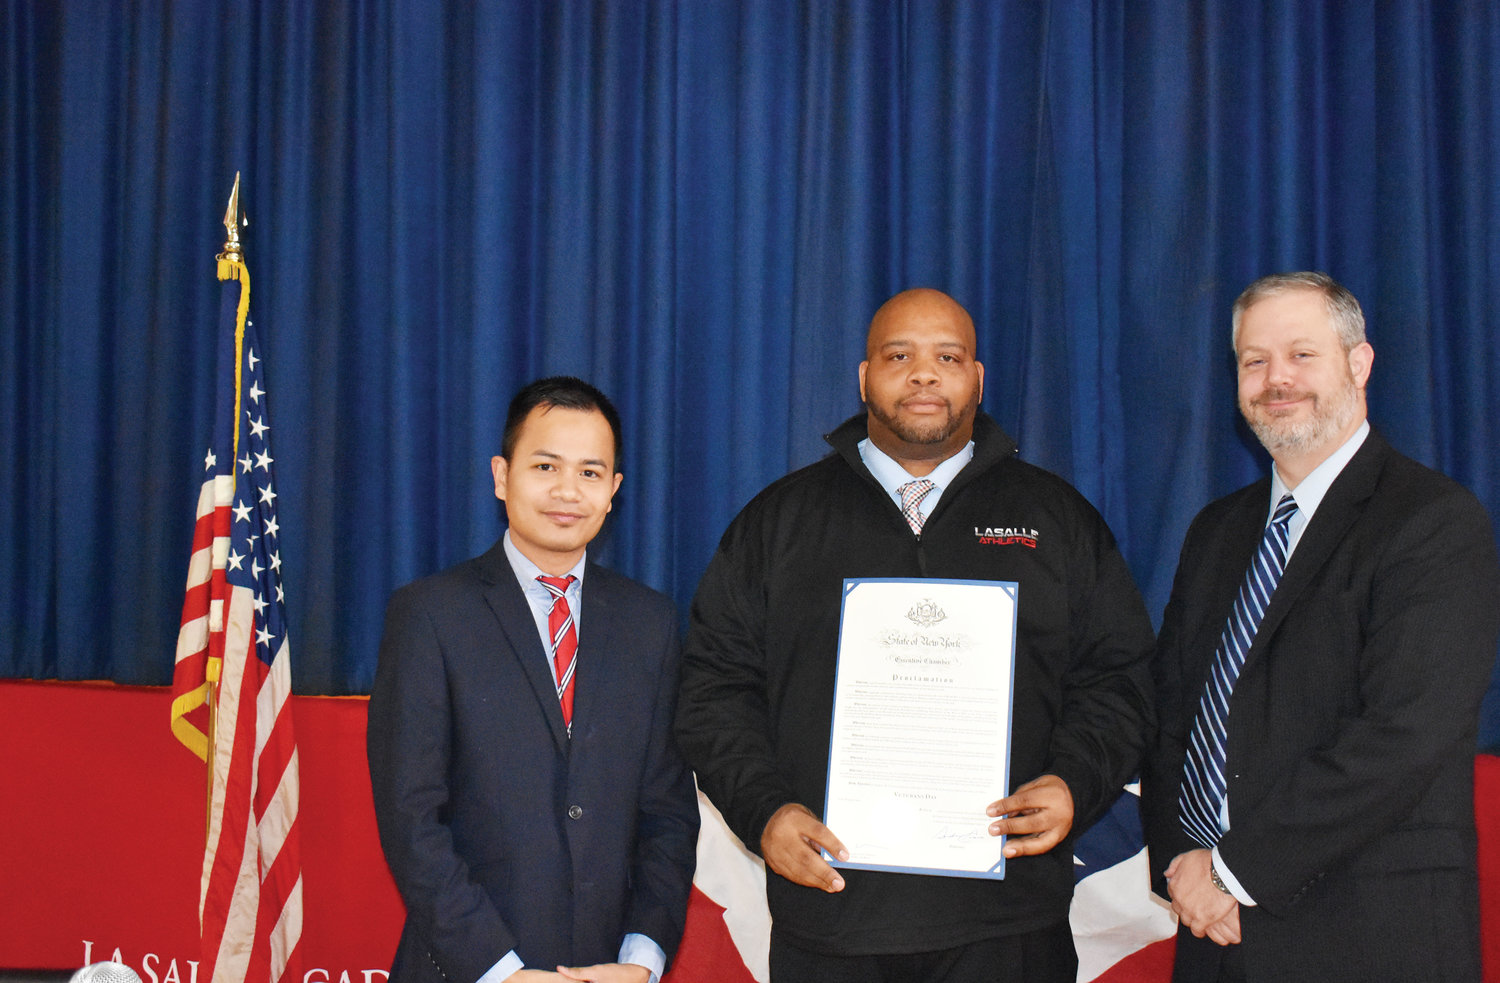 Jerome Pannell, center, La Salle's assistant principal for students services and athletic director, accepts a proclamation by Gov. Andrew Cuomo to La Salle honoring Veterans Day.